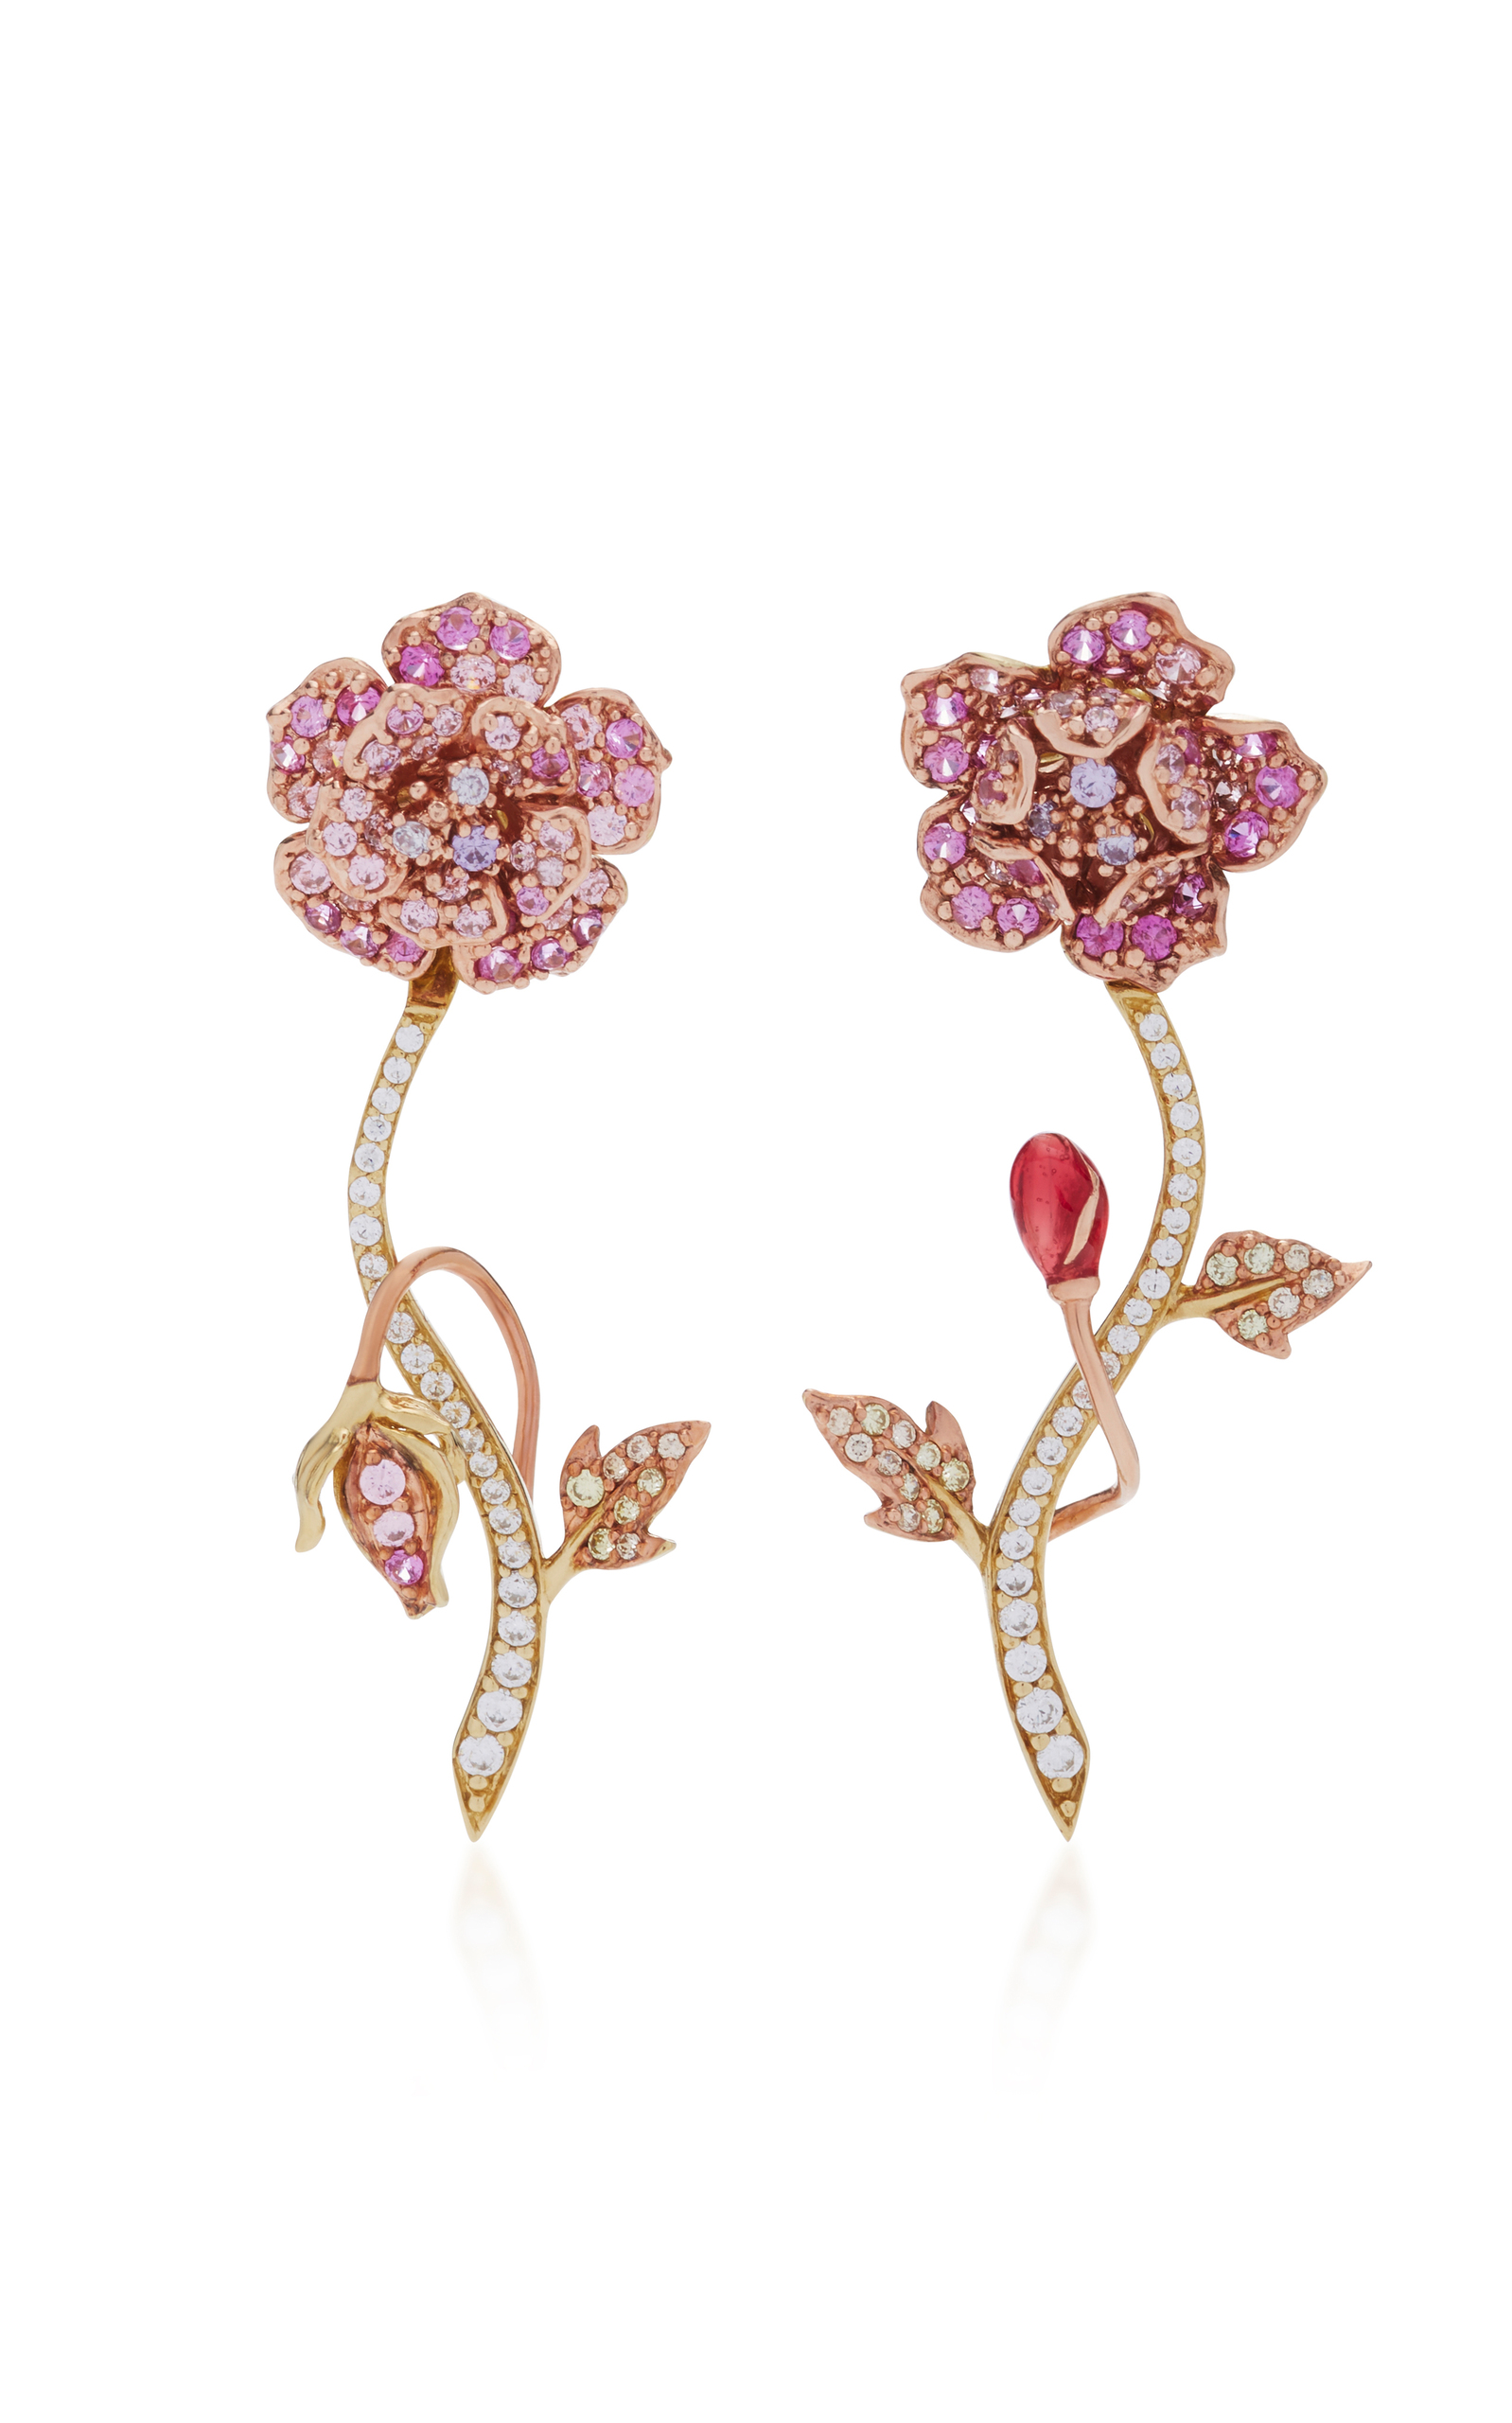 Anabela Chan 18k Gold Vermeil Daisy Diamond And Shire Earrings In Pink